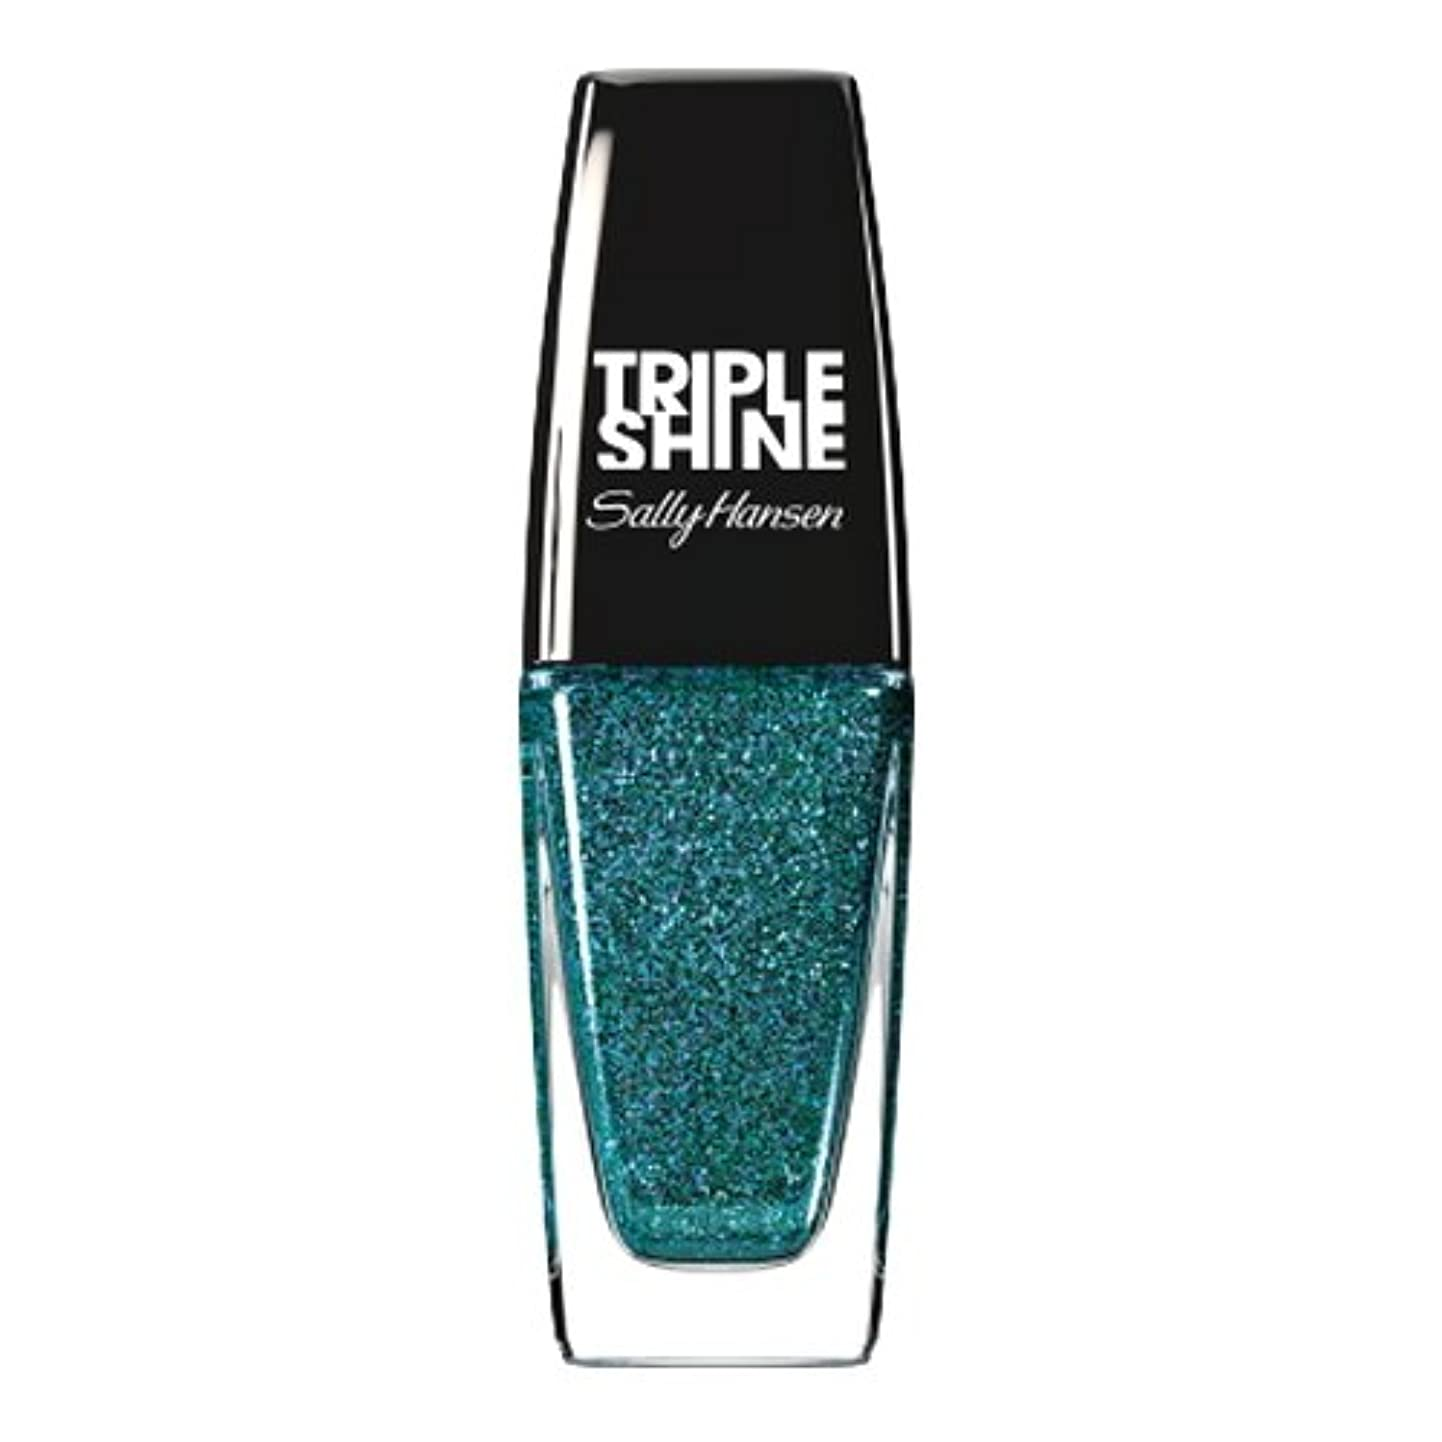 ニンニク幅使用法SALLY HANSEN Triple Shine Nail Polish - Sparkling Water (並行輸入品)